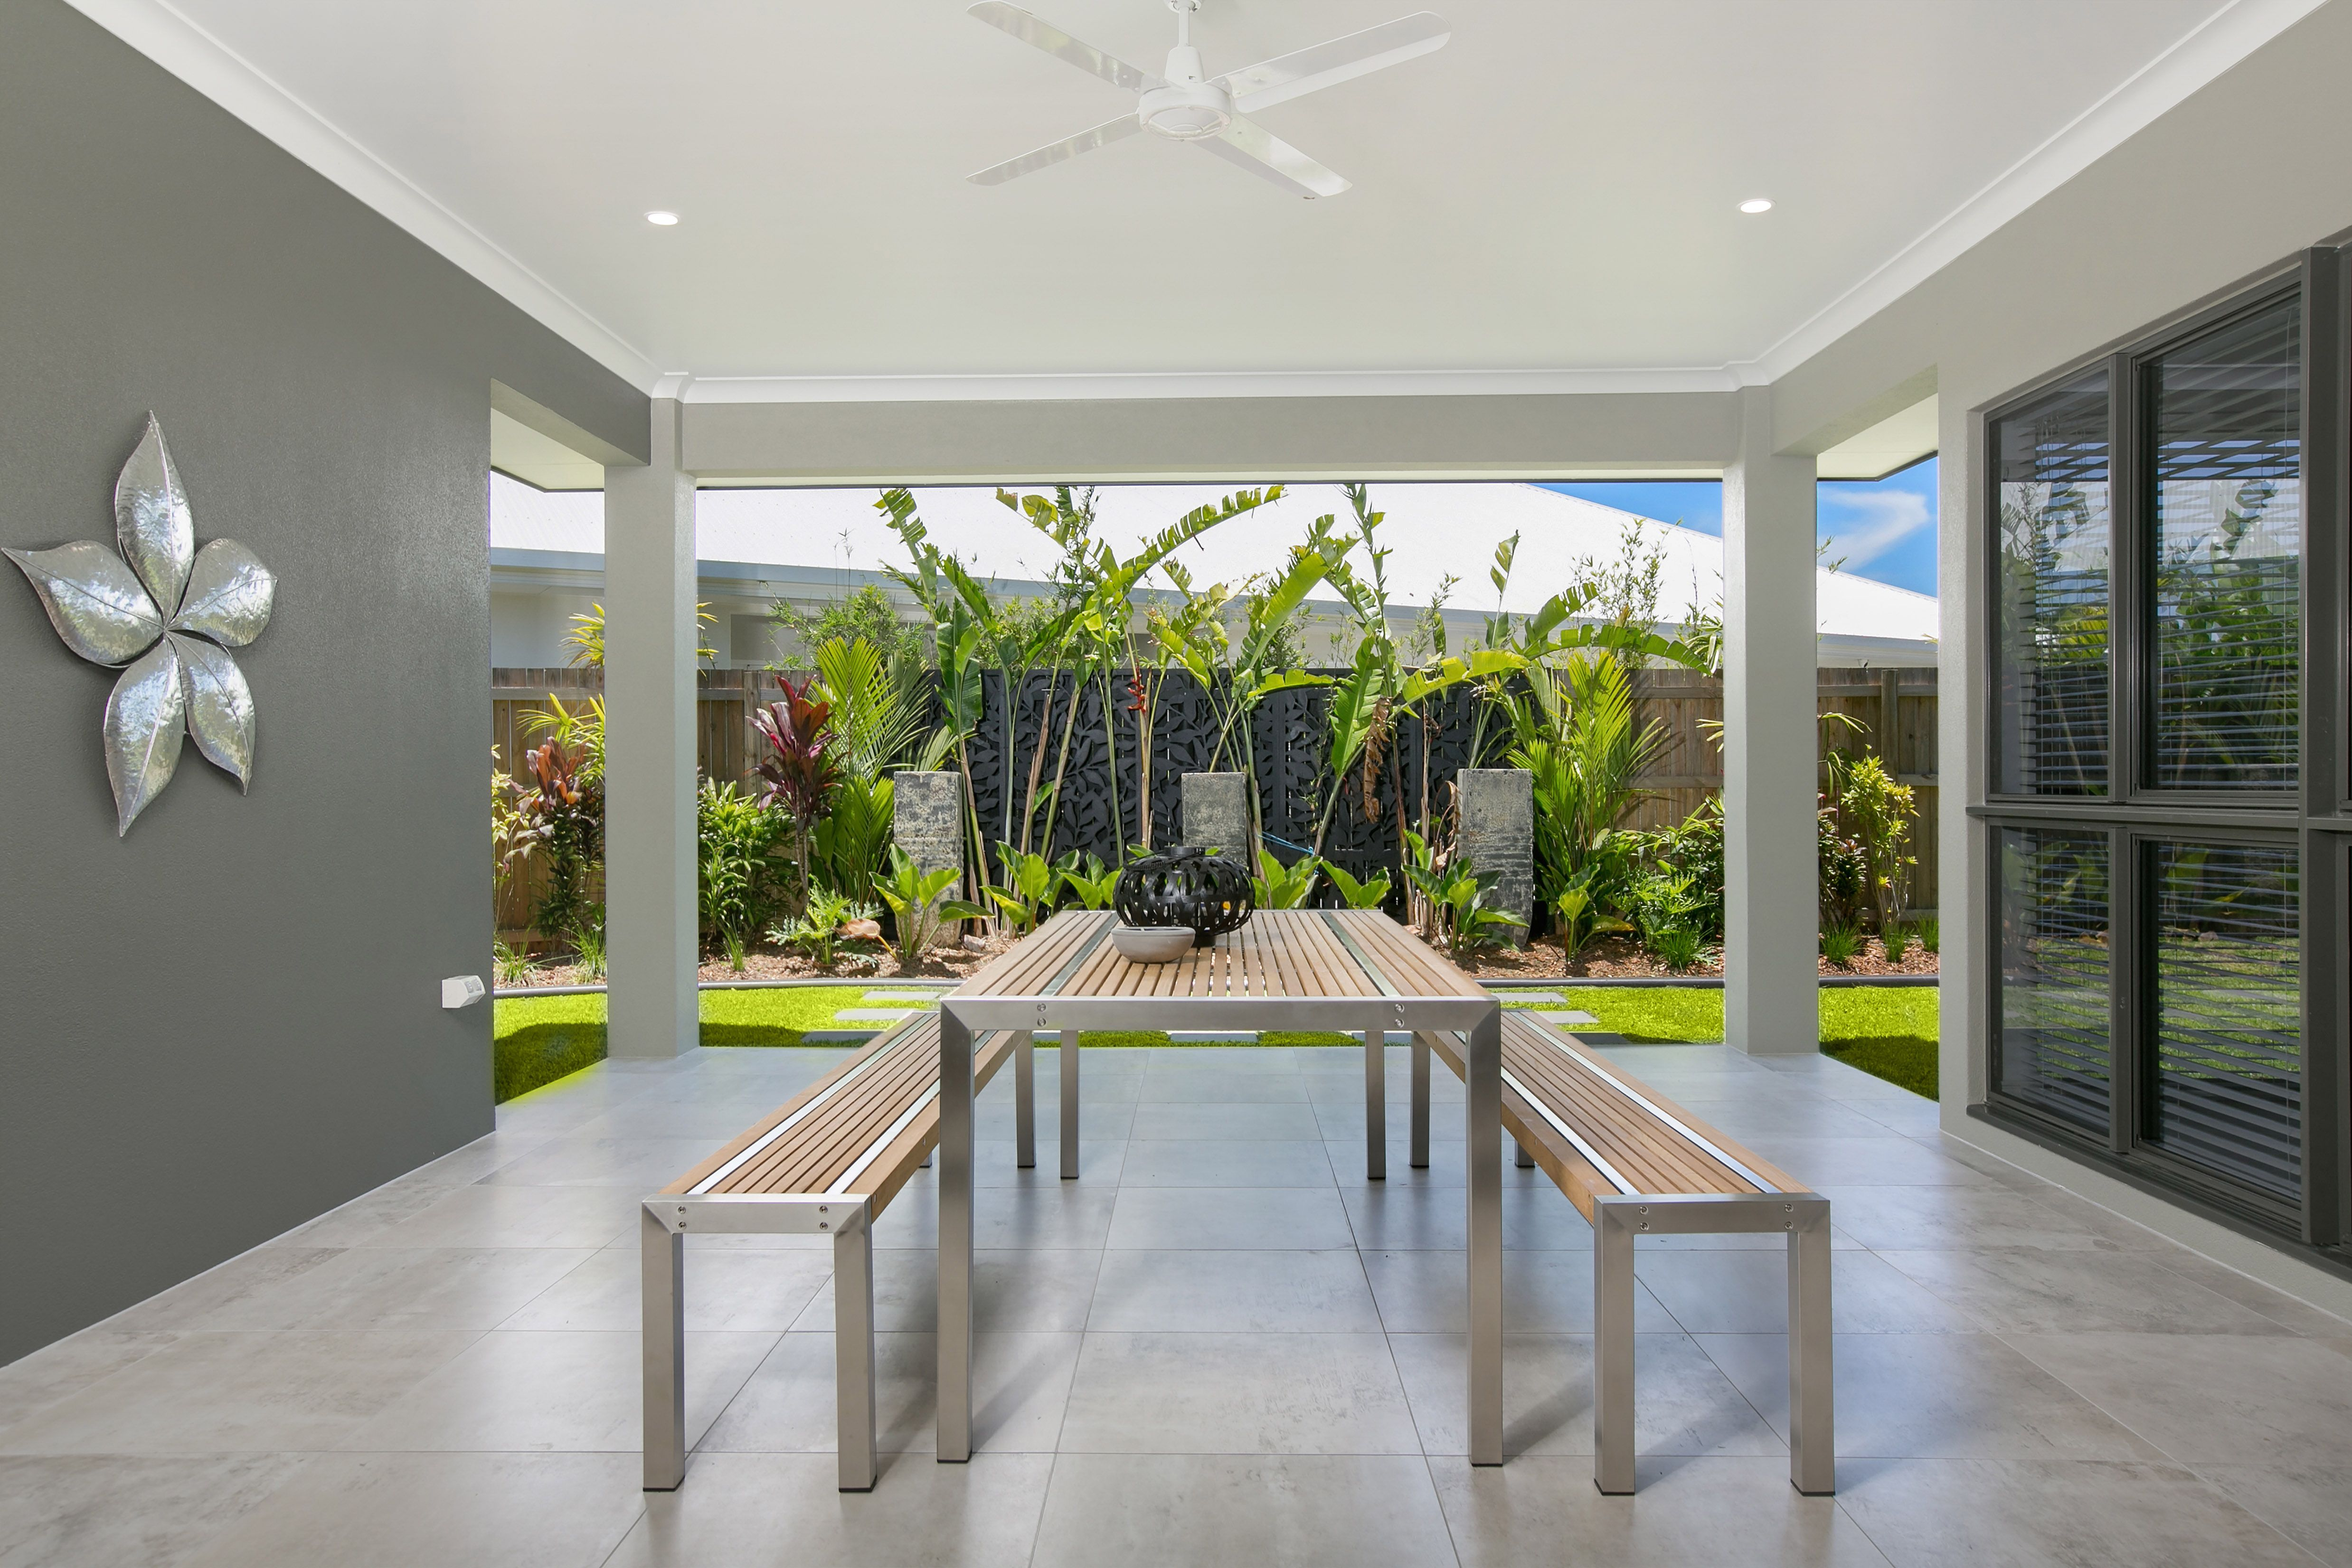 This beautiful house features a central patio area. This is a perfect place for the family to enjoy a barbecue or to entertain guests. As the patio is central, this provides easy access to the kitchen which is convenient.